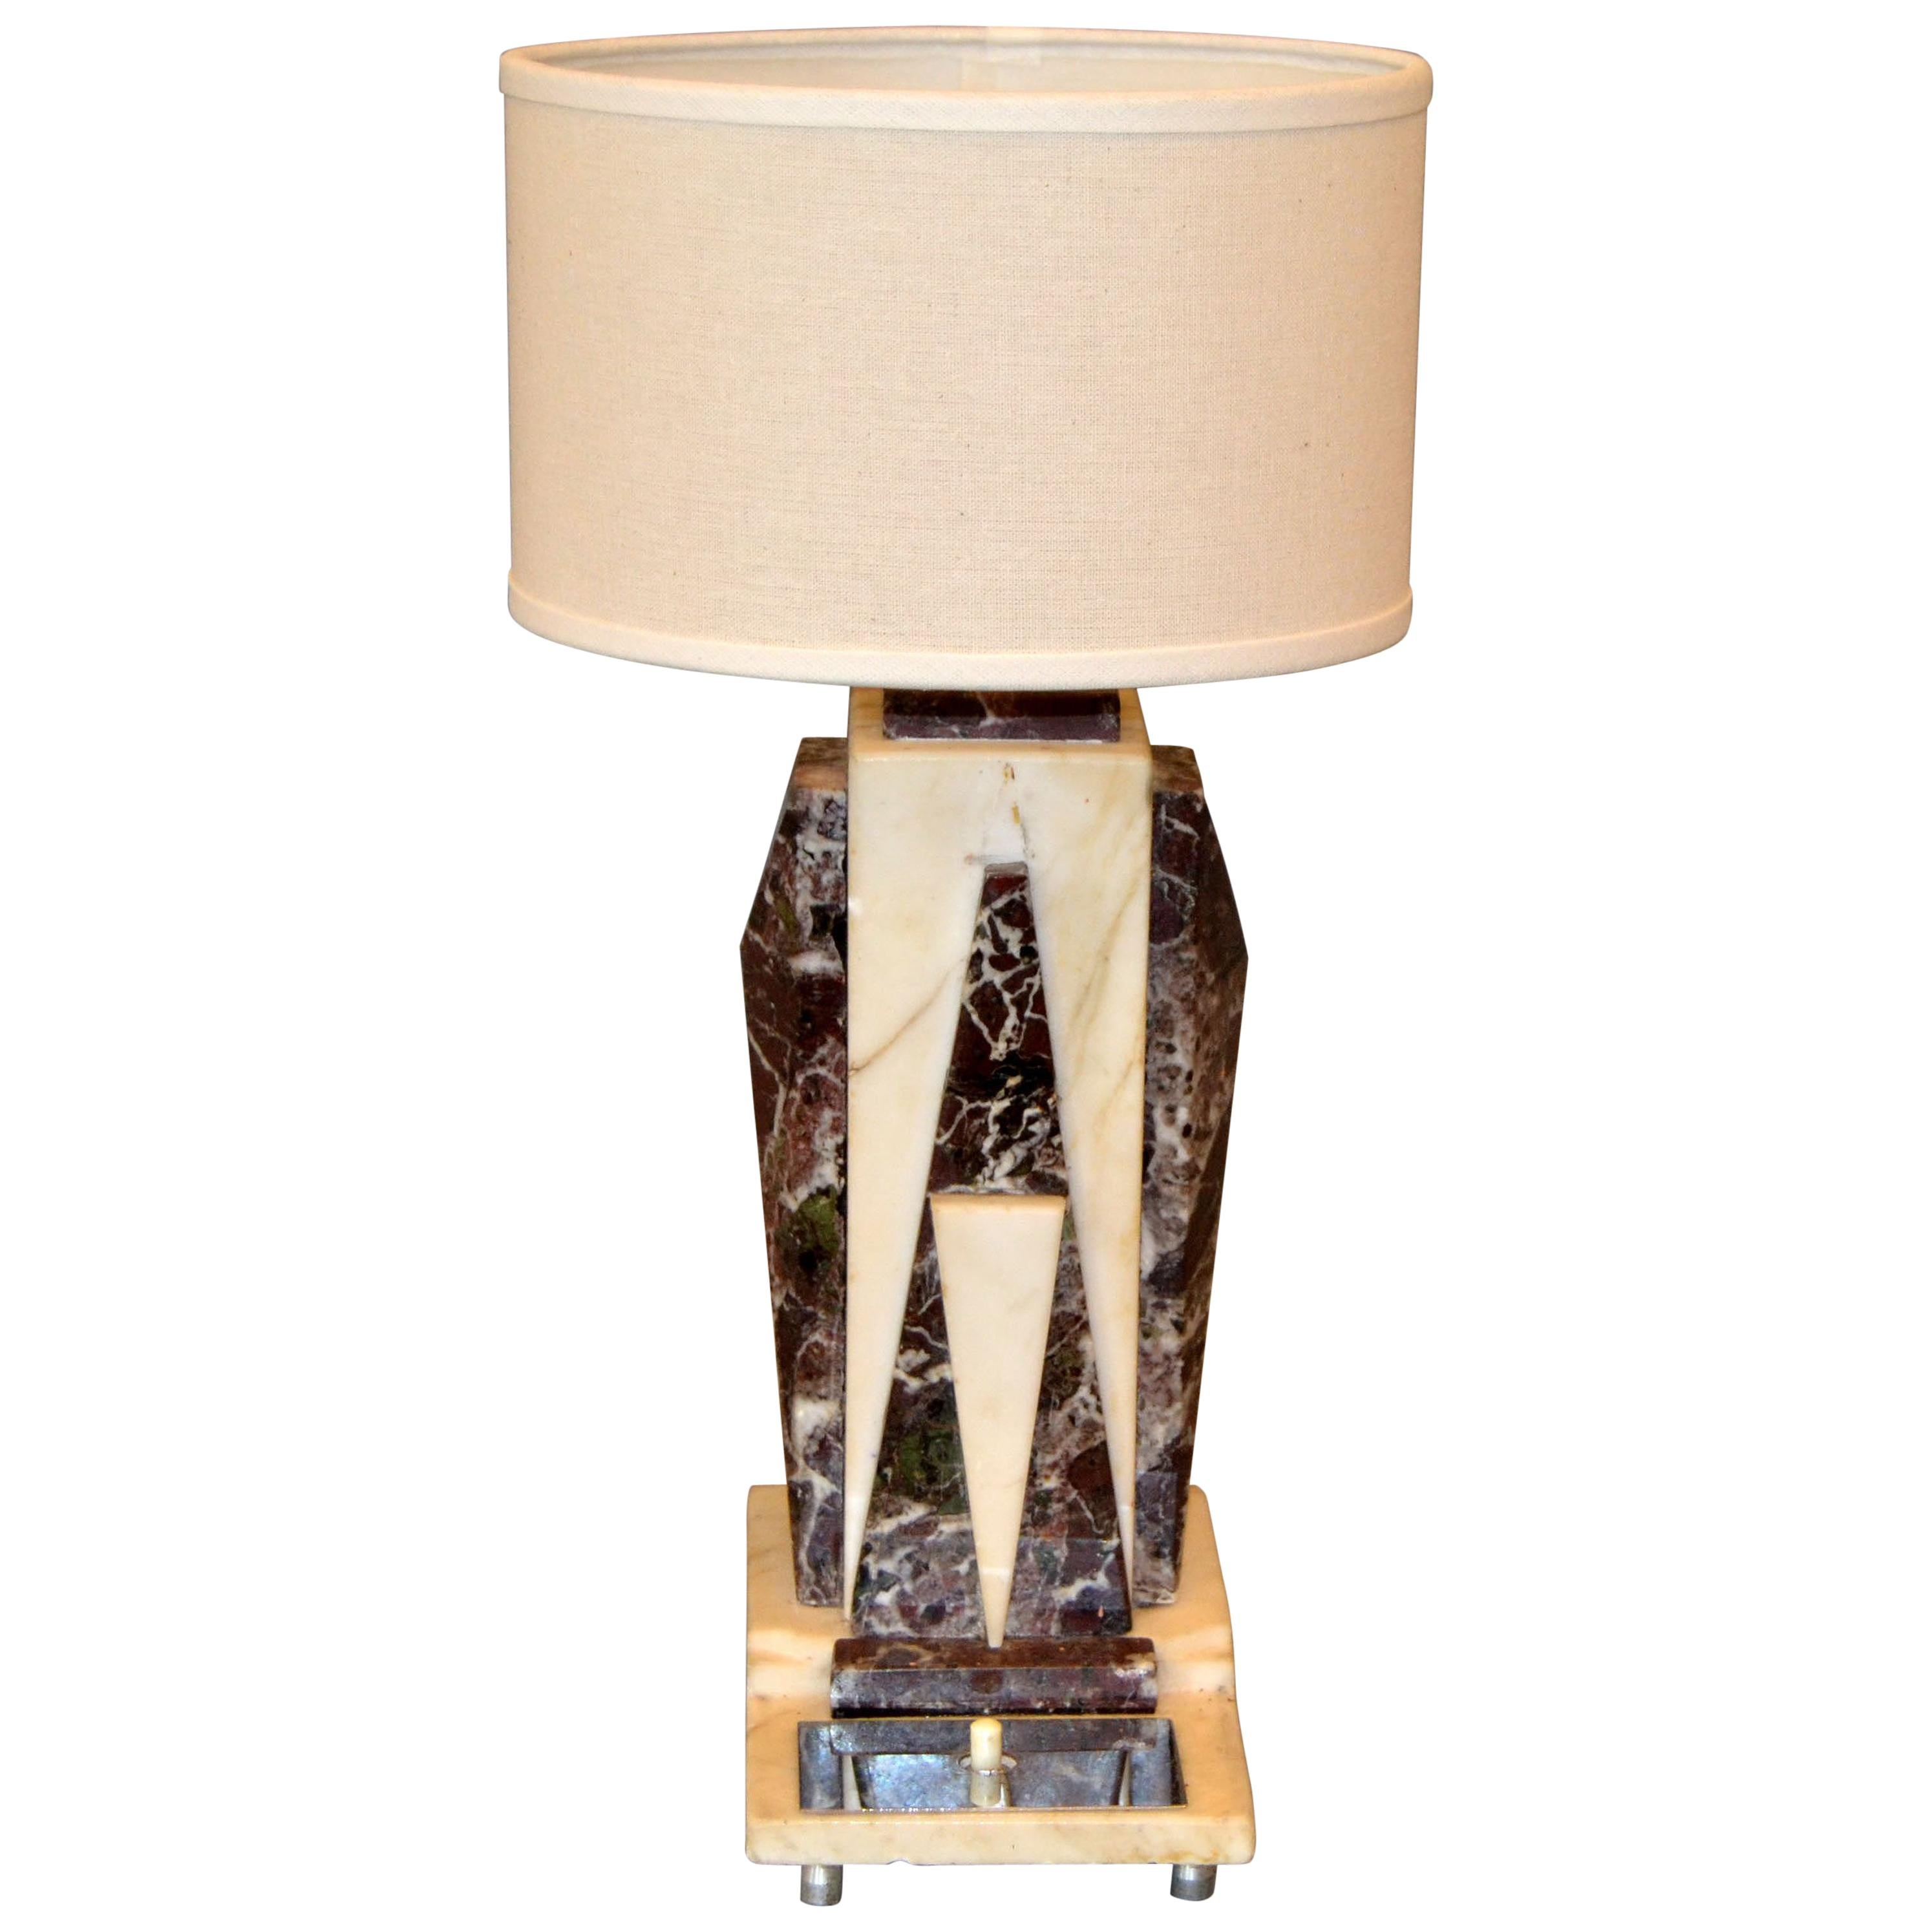 Petite Art Deco Italian Marble and Chrome Bedside Table Lamp with Round Shade